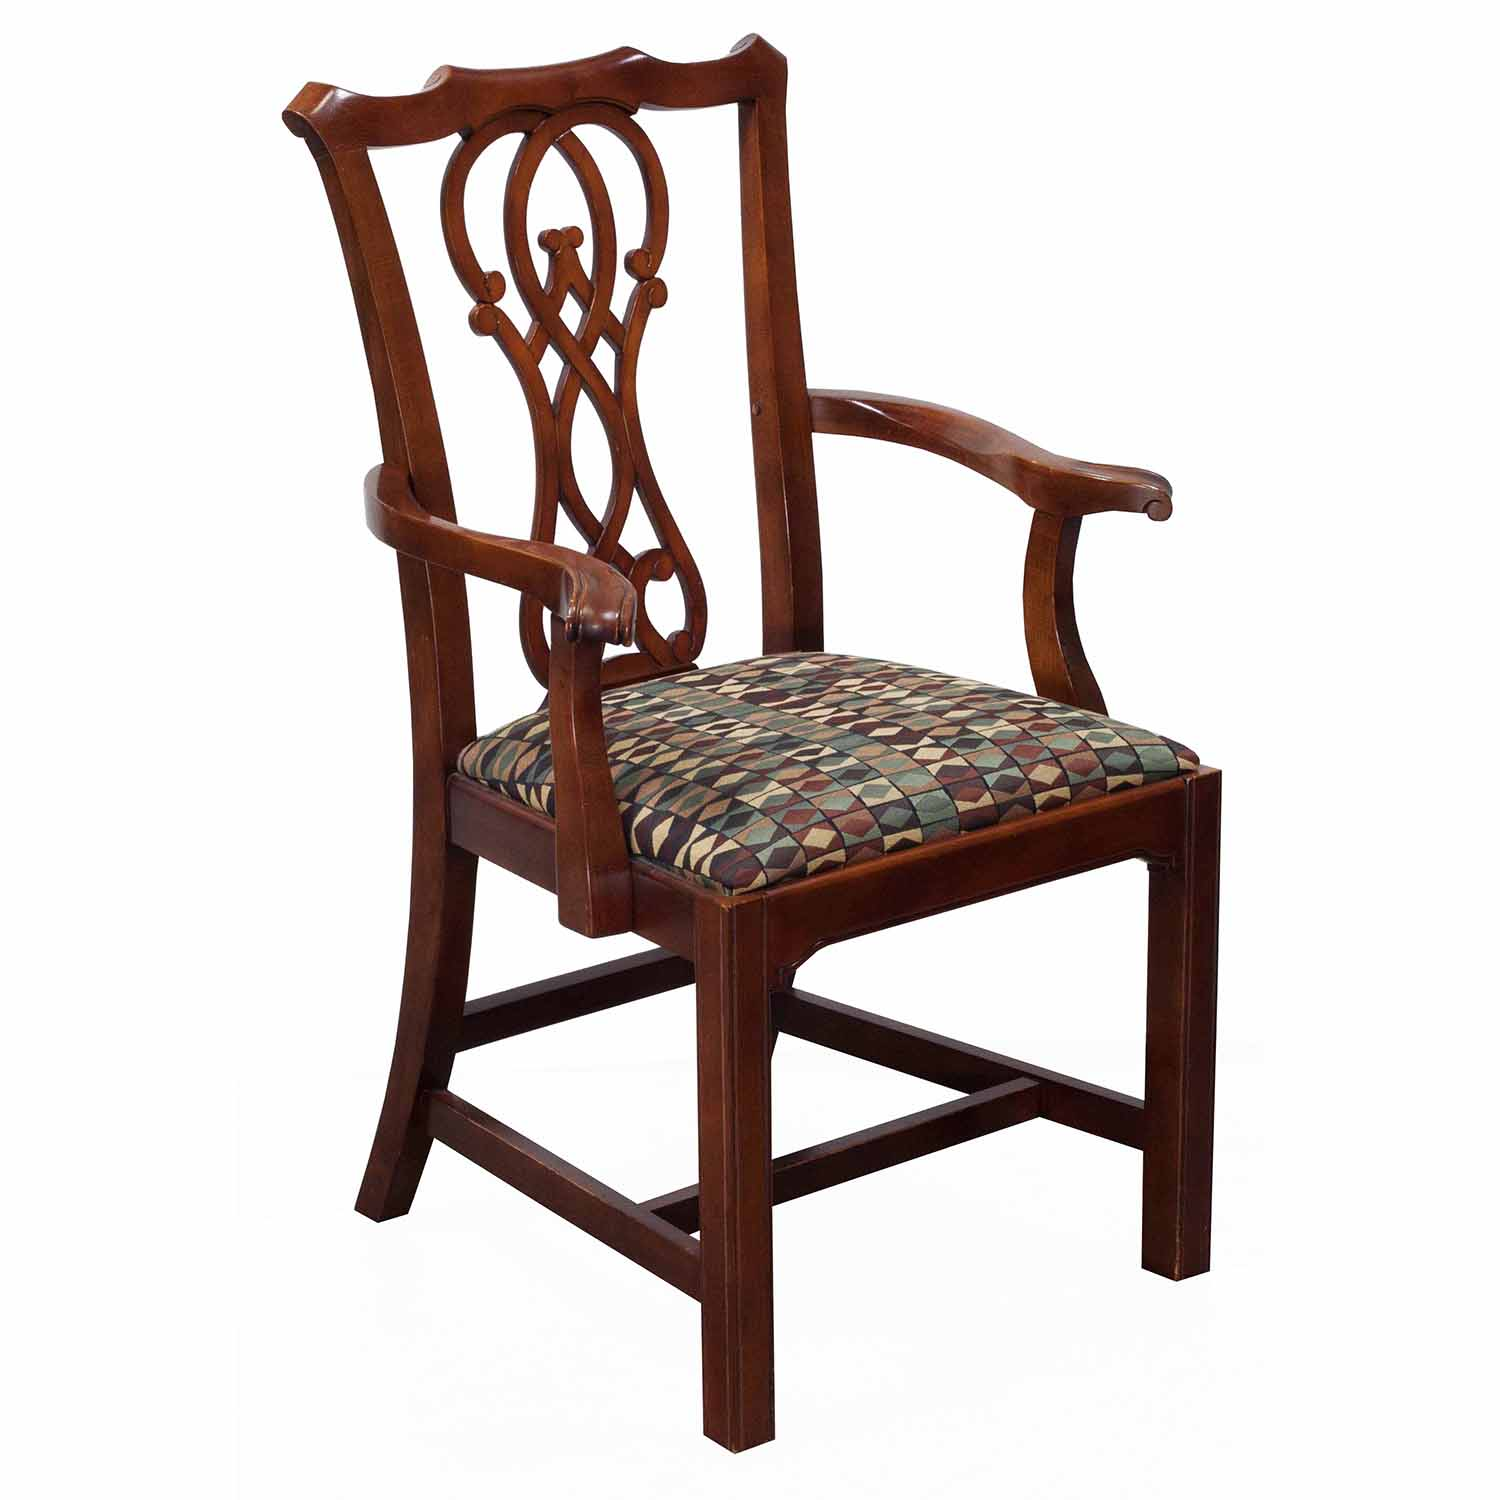 Cherry Chairs Bernhardt Eaton Square Used Wooden Arm Chair Cherry